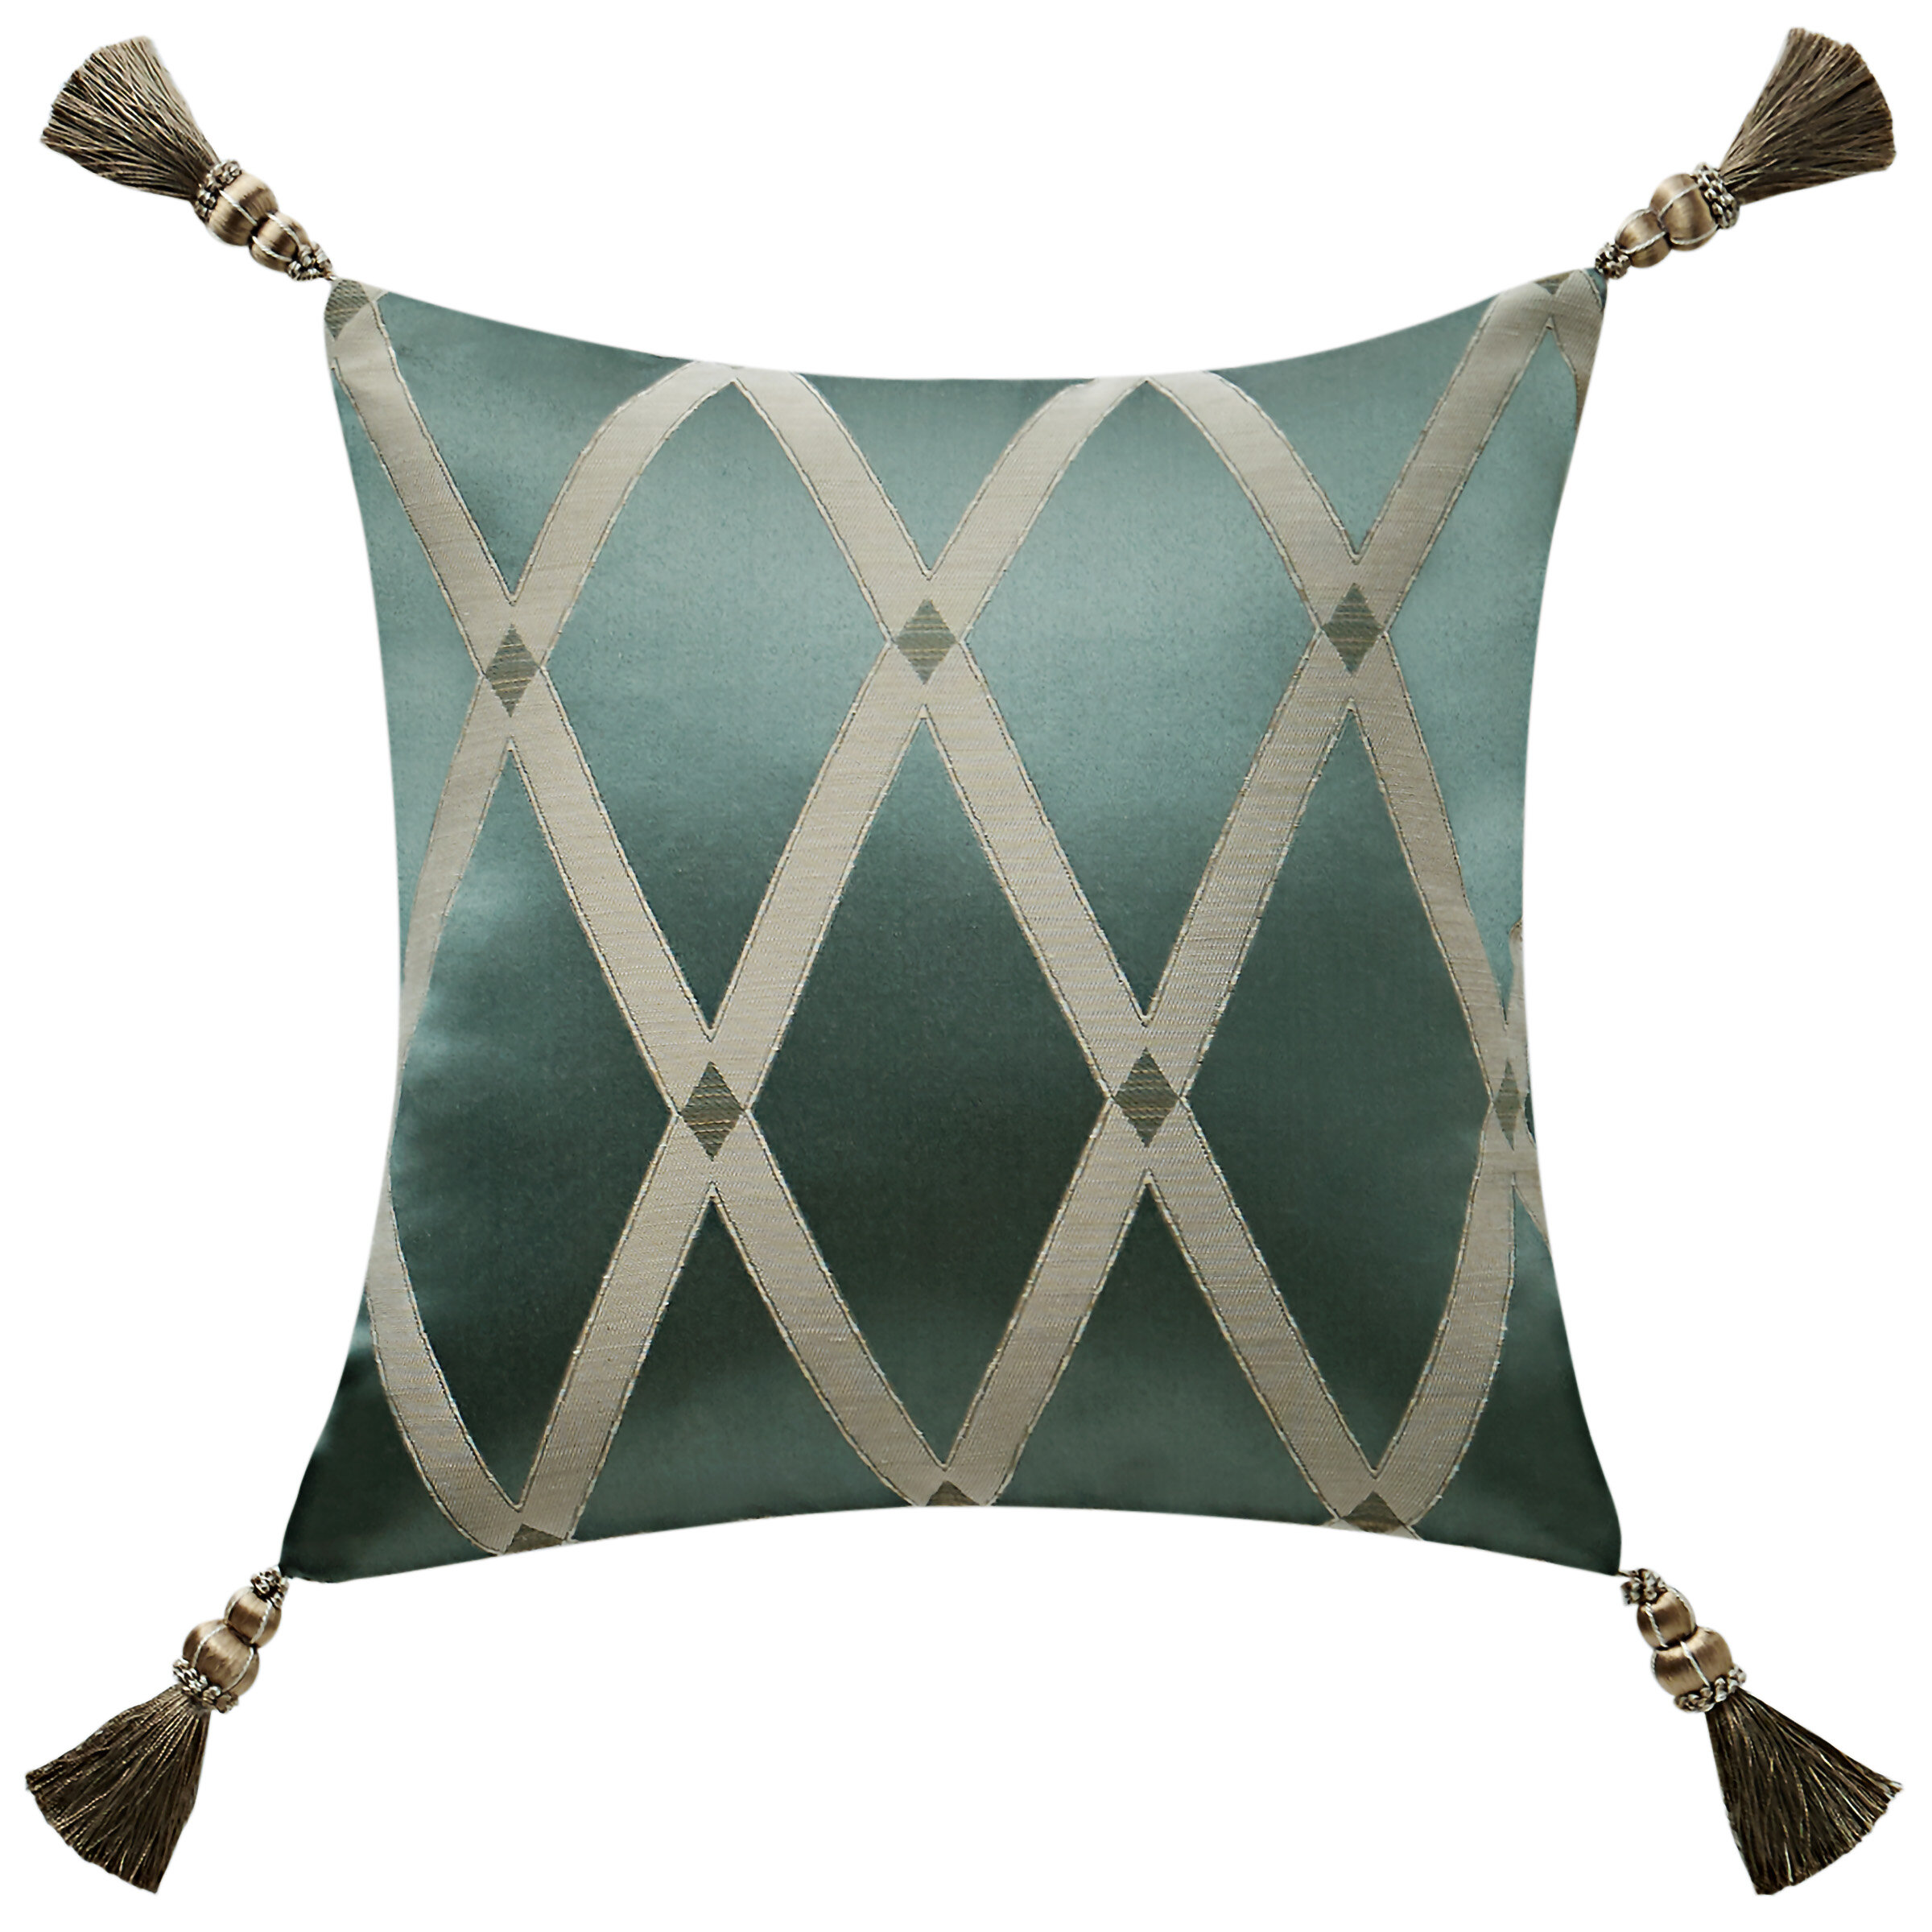 16 Square Waterford Bedding Throw Pillows You Ll Love In 2021 Wayfair